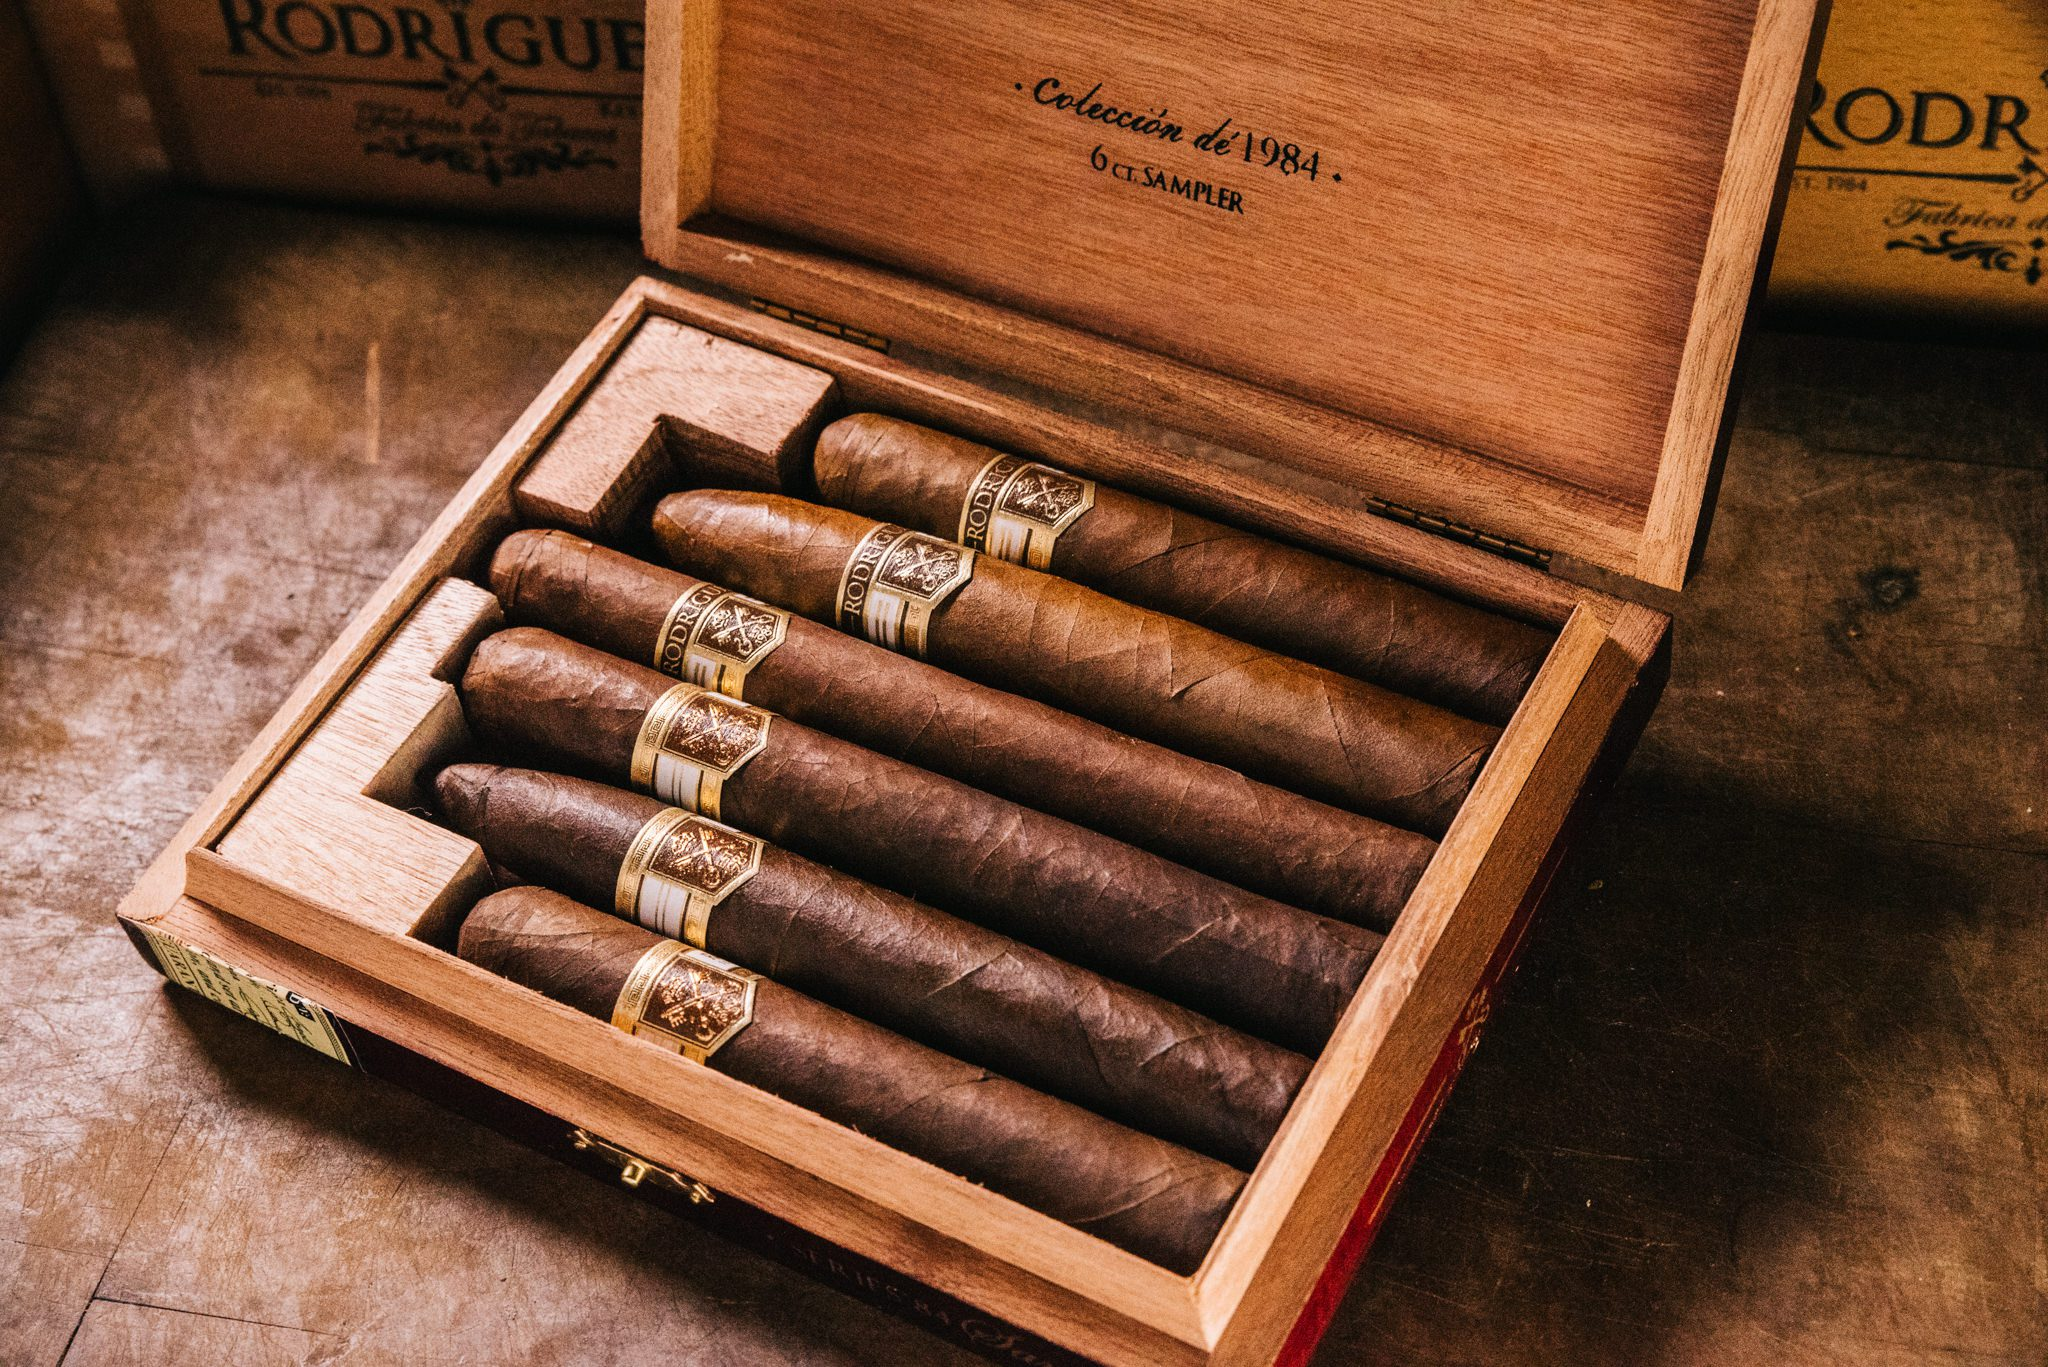 Cigars in a box for a commercial product photoshoot